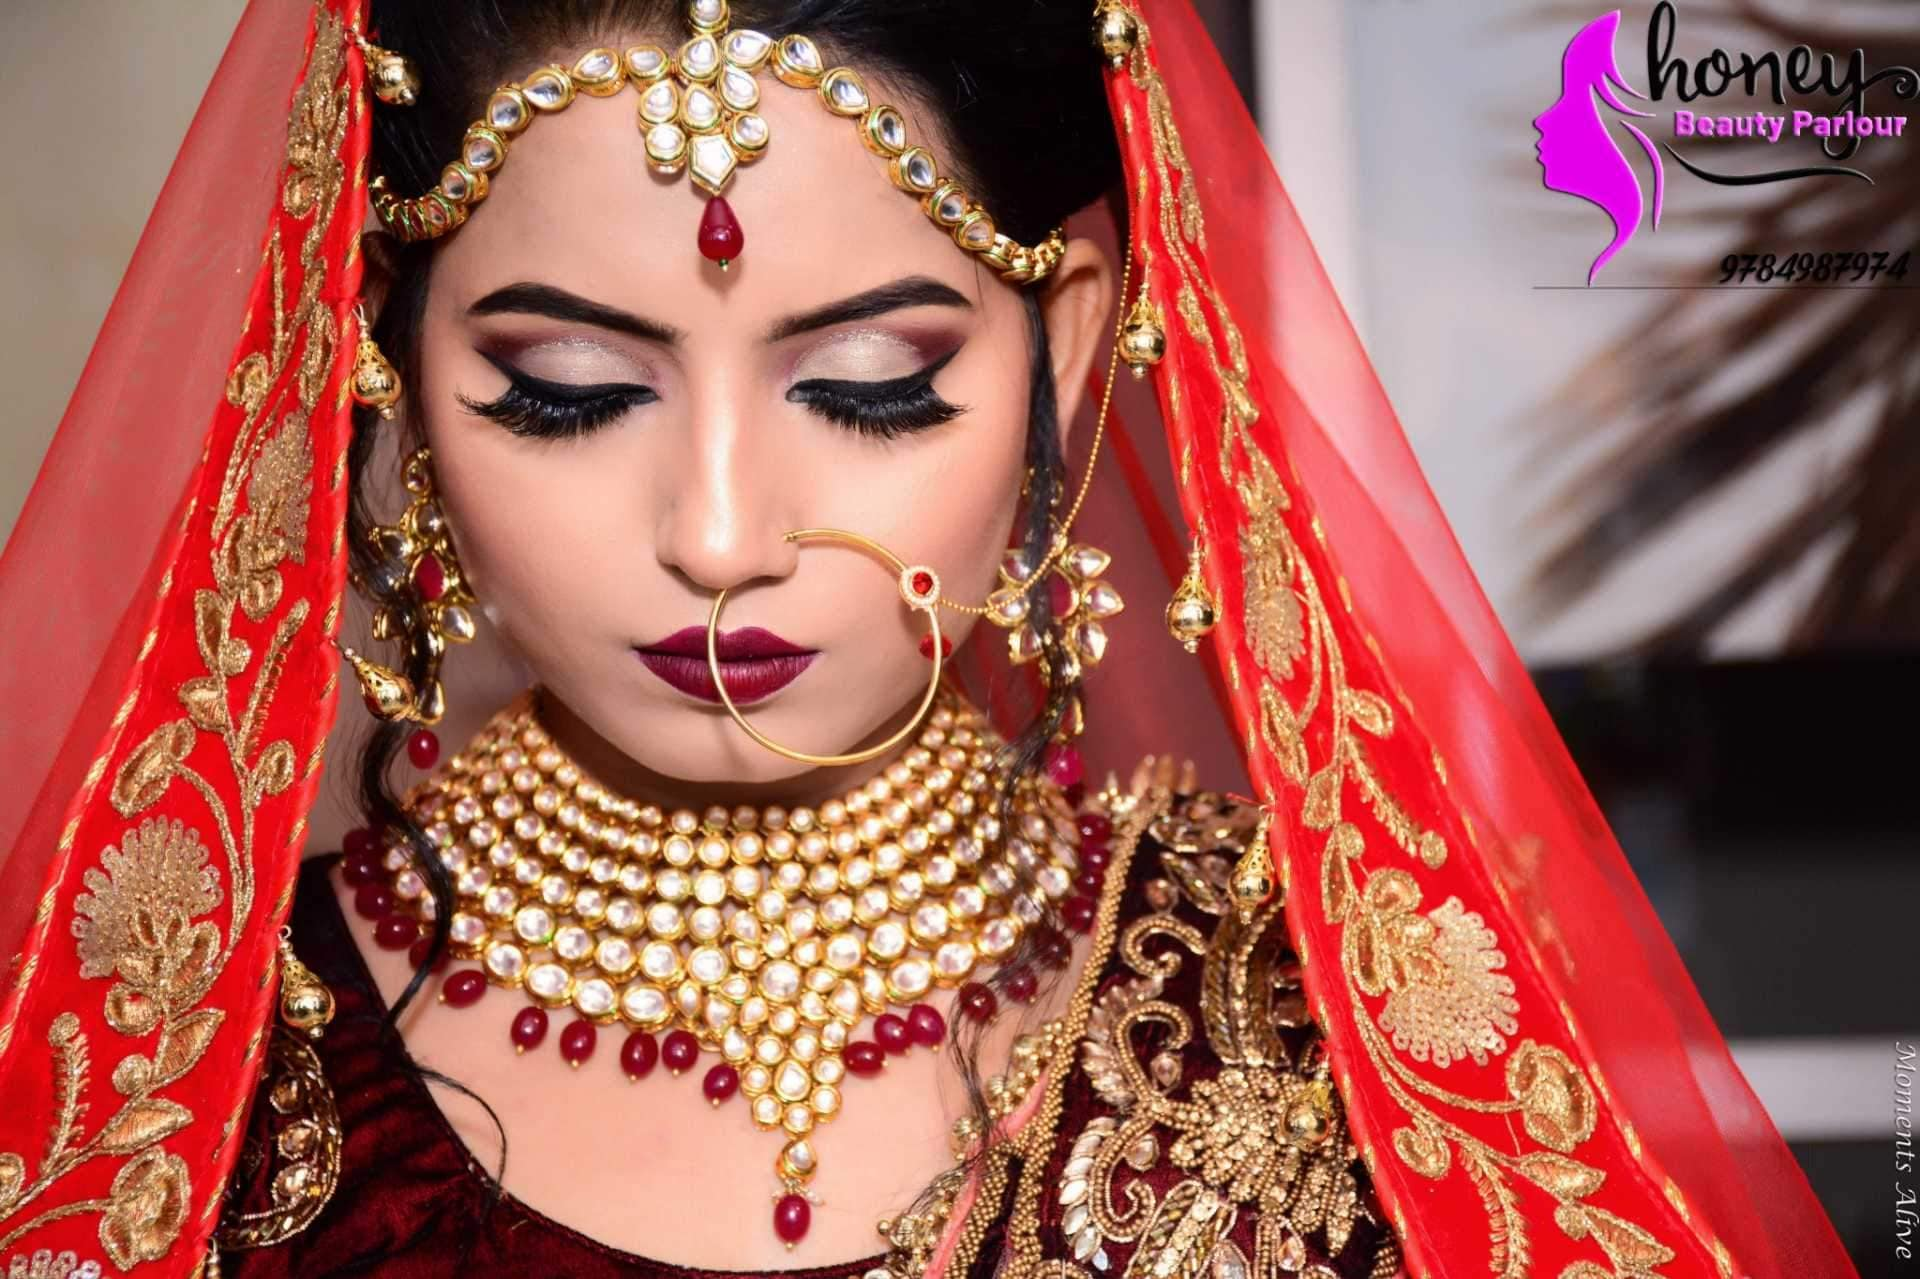 Top Eyebrow Waxing Services At Home in Hyderabad - Justdial